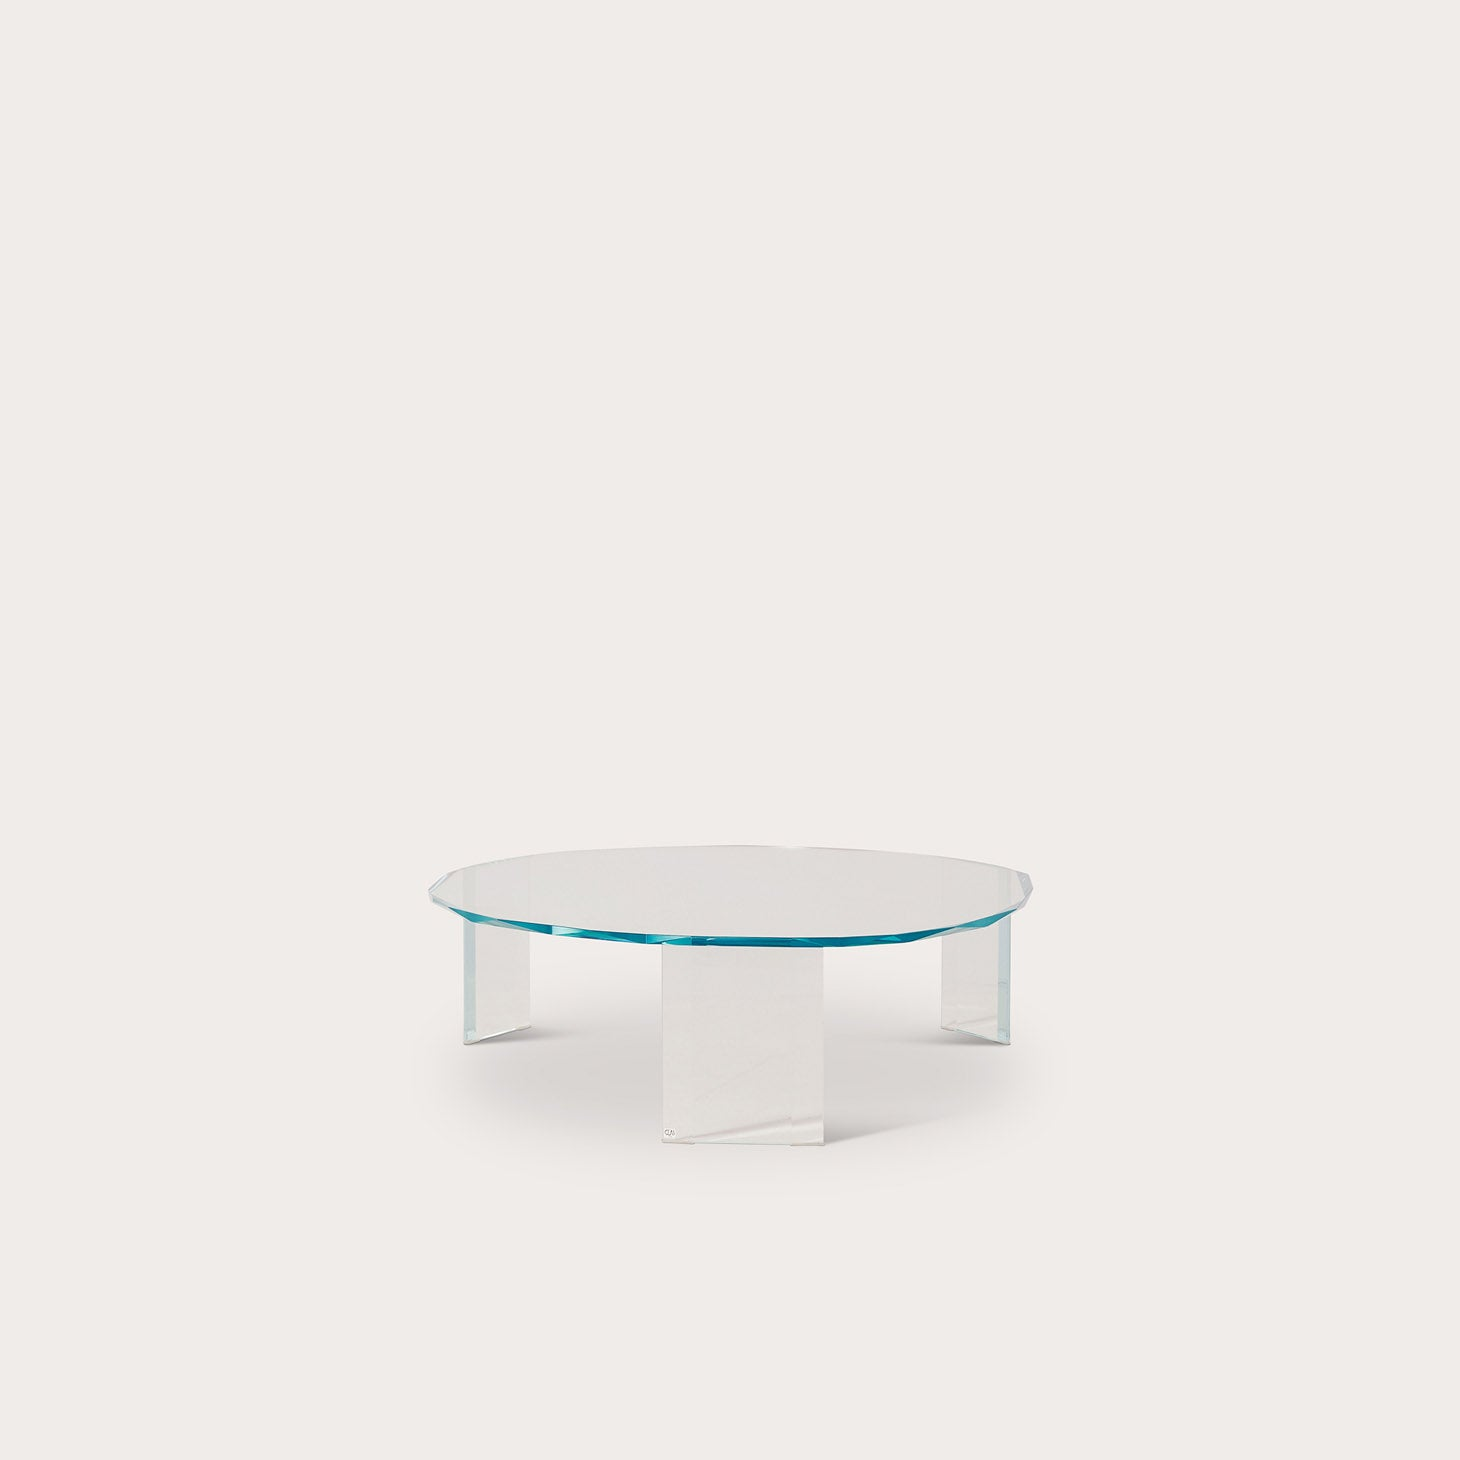 Kooh-I-Noor Tables Piero Lissoni Designer Furniture Sku: 288-230-10003